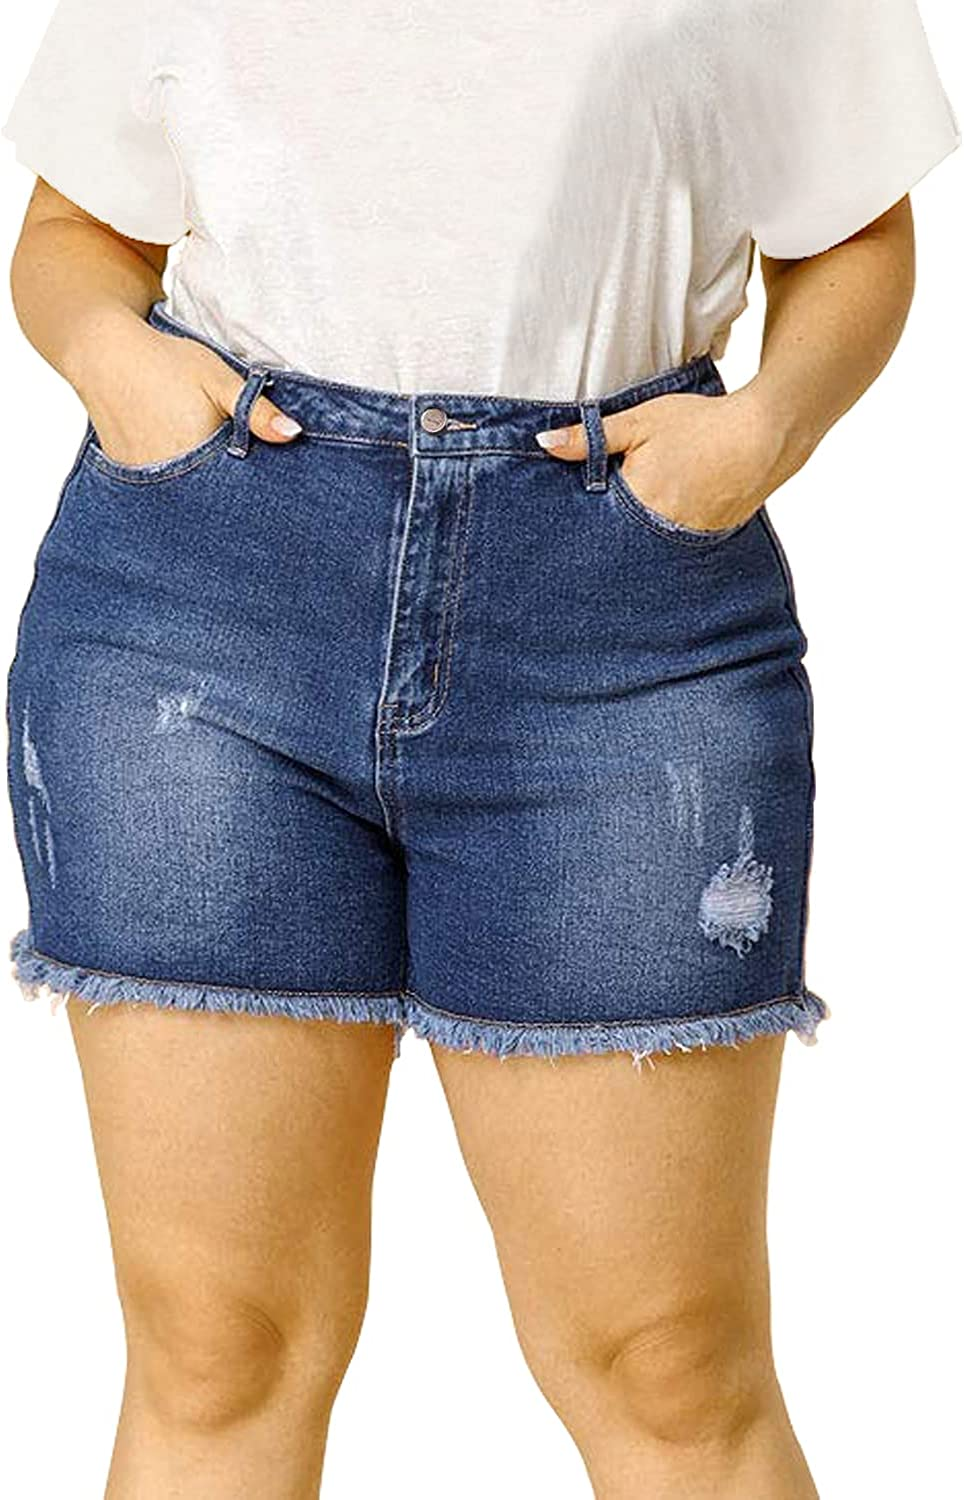 Tulucky Plus Size Denim Shorts Women Sexy High Waist Distressed Ripped Jean Shorts